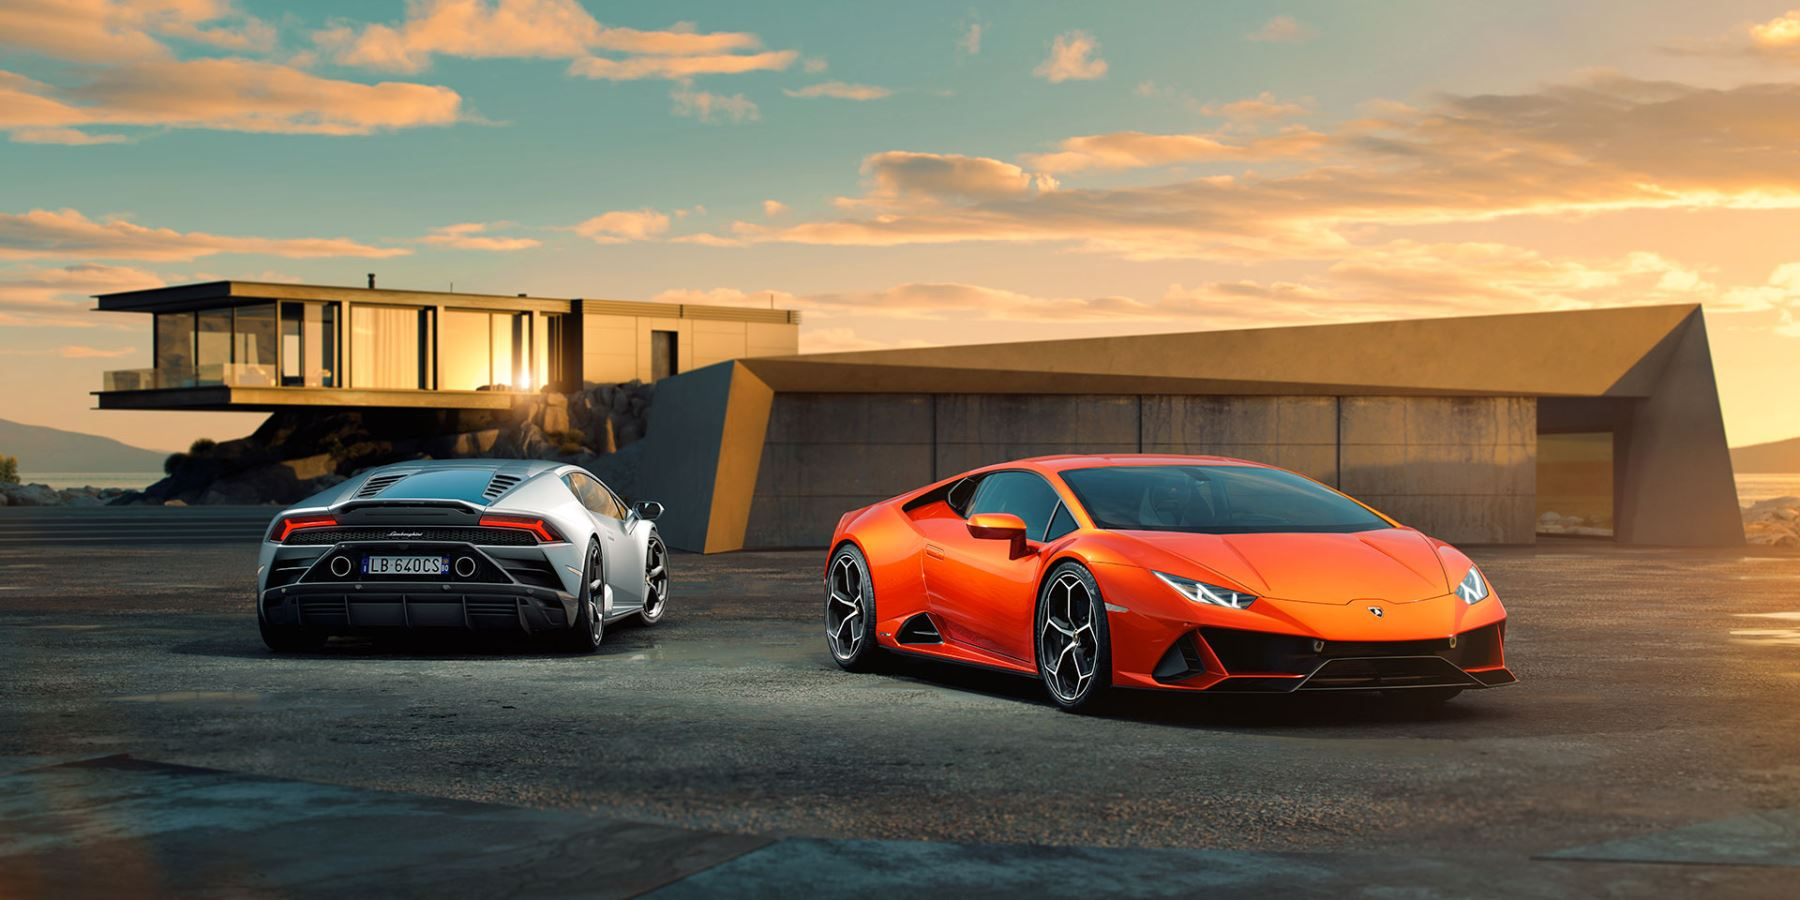 Lamborghini Huracan EVO - Every Day Amplified image 10